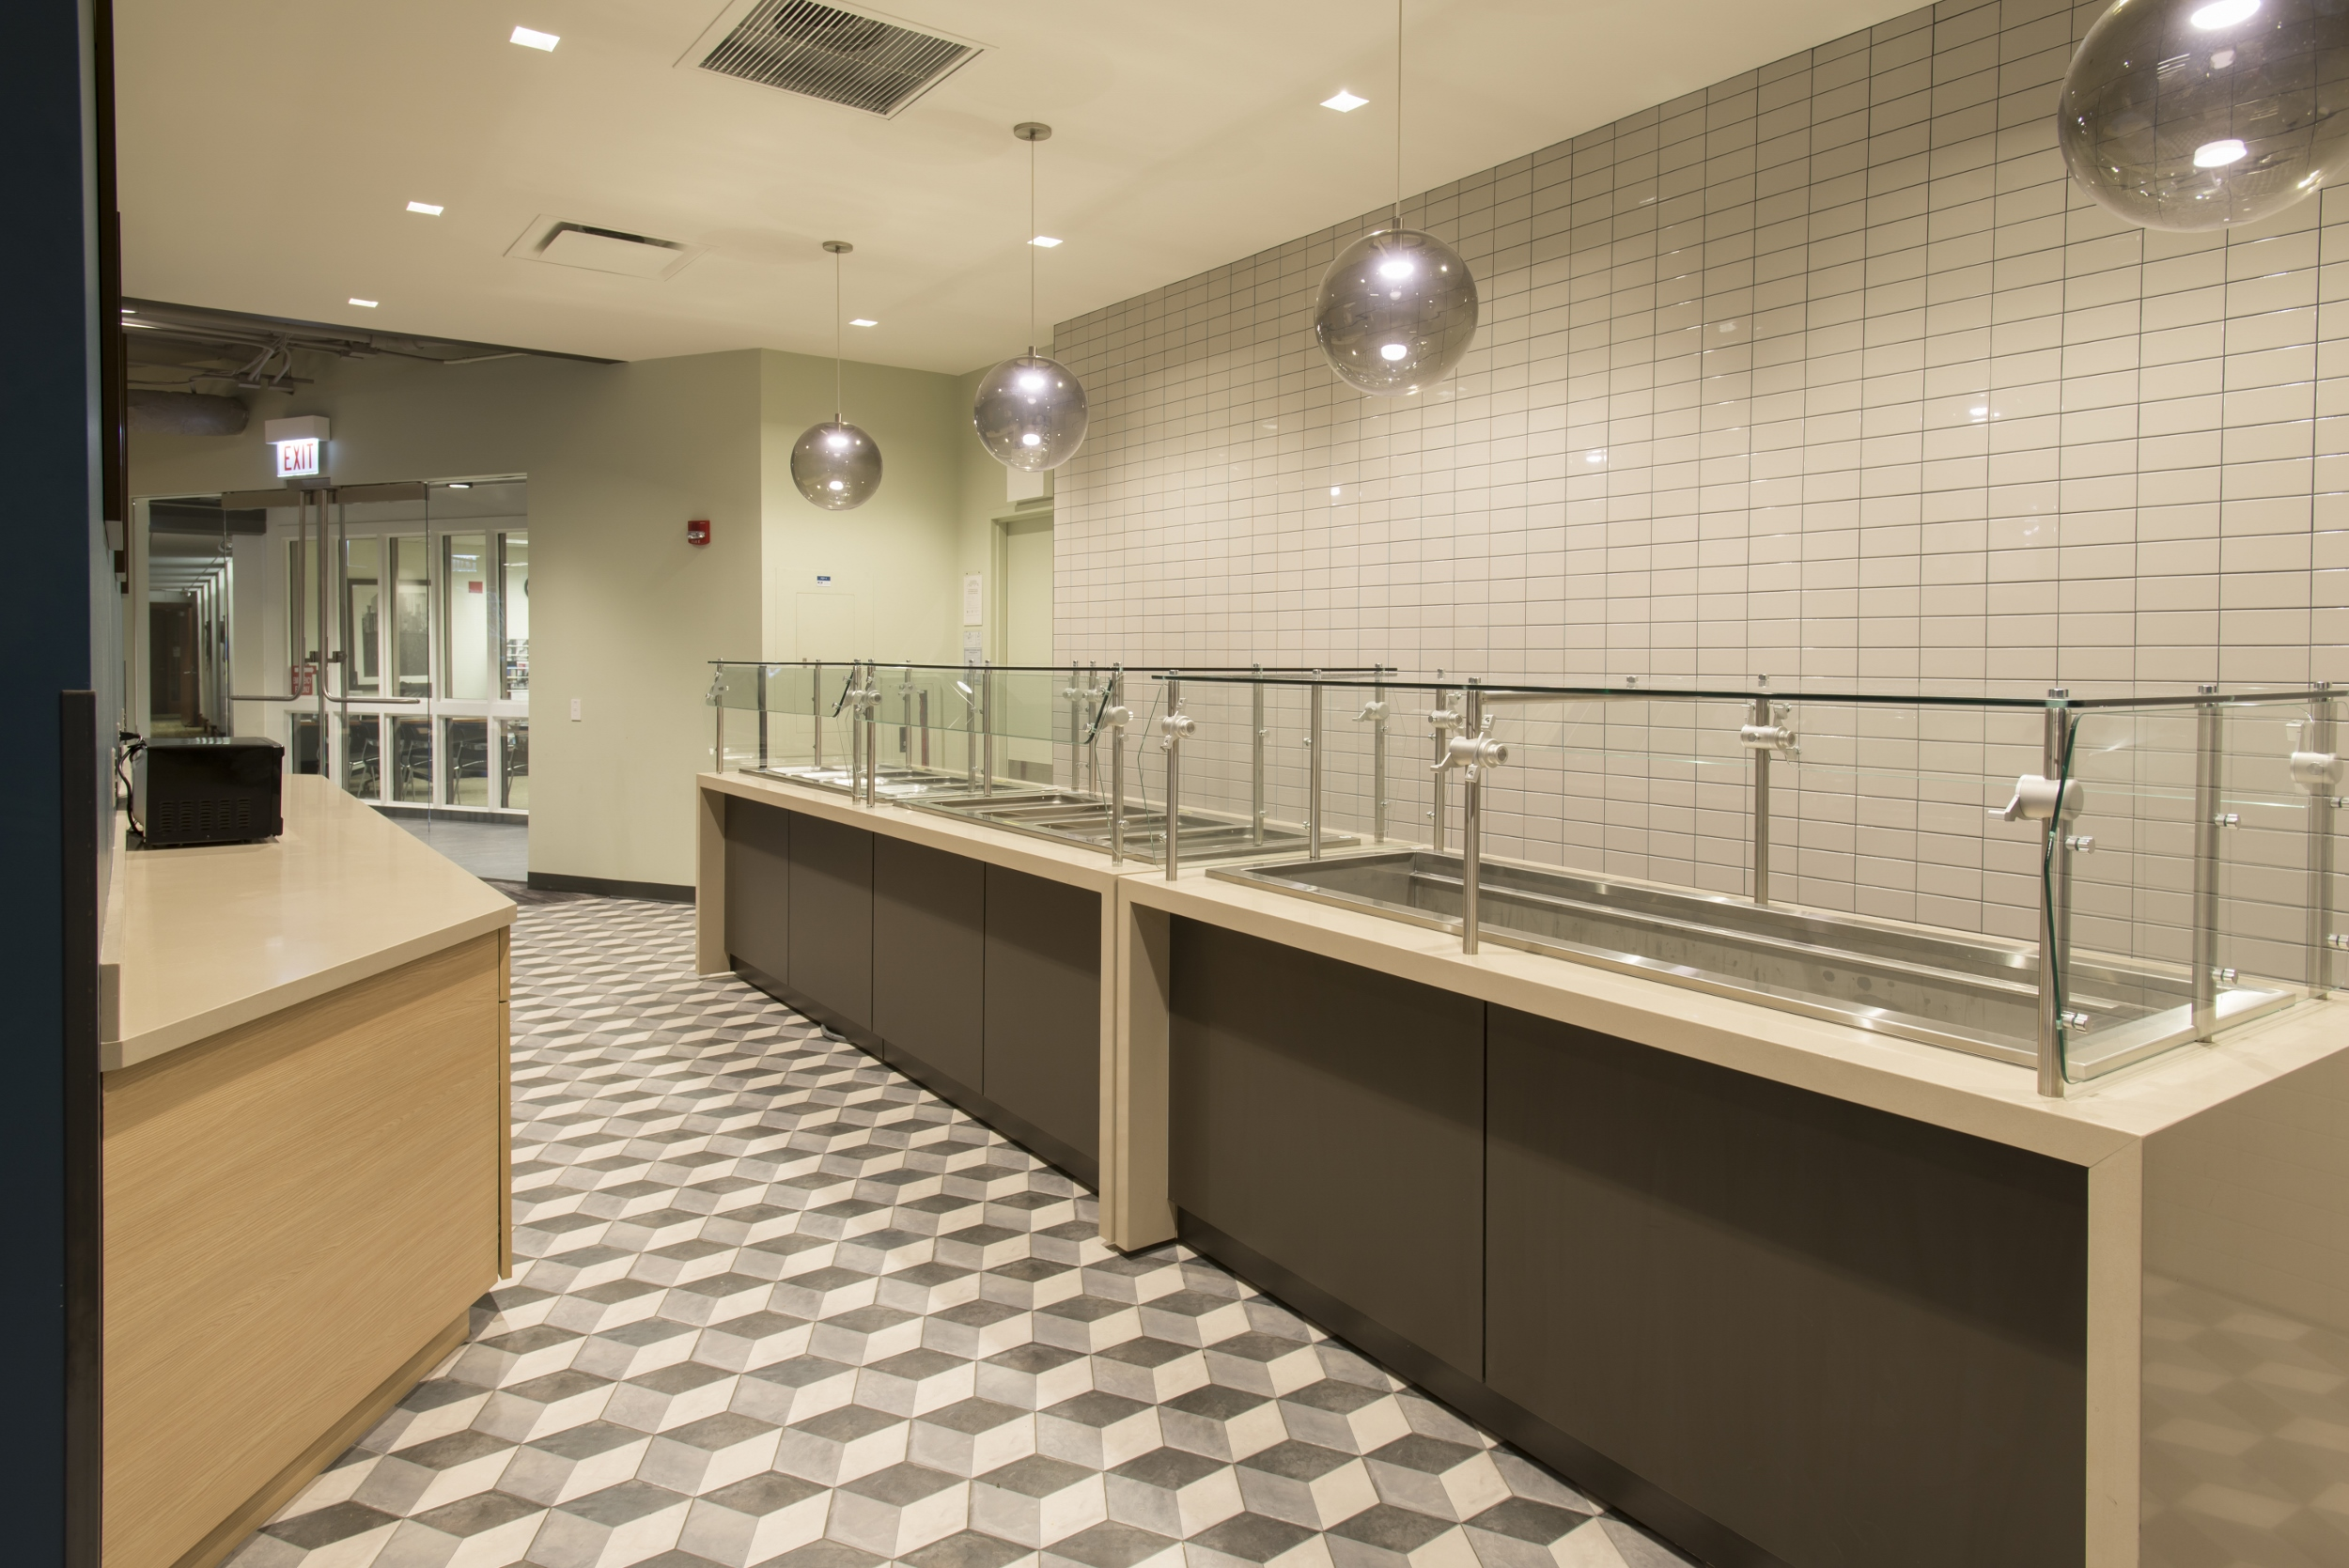 Kitchen area at Arrupe College.